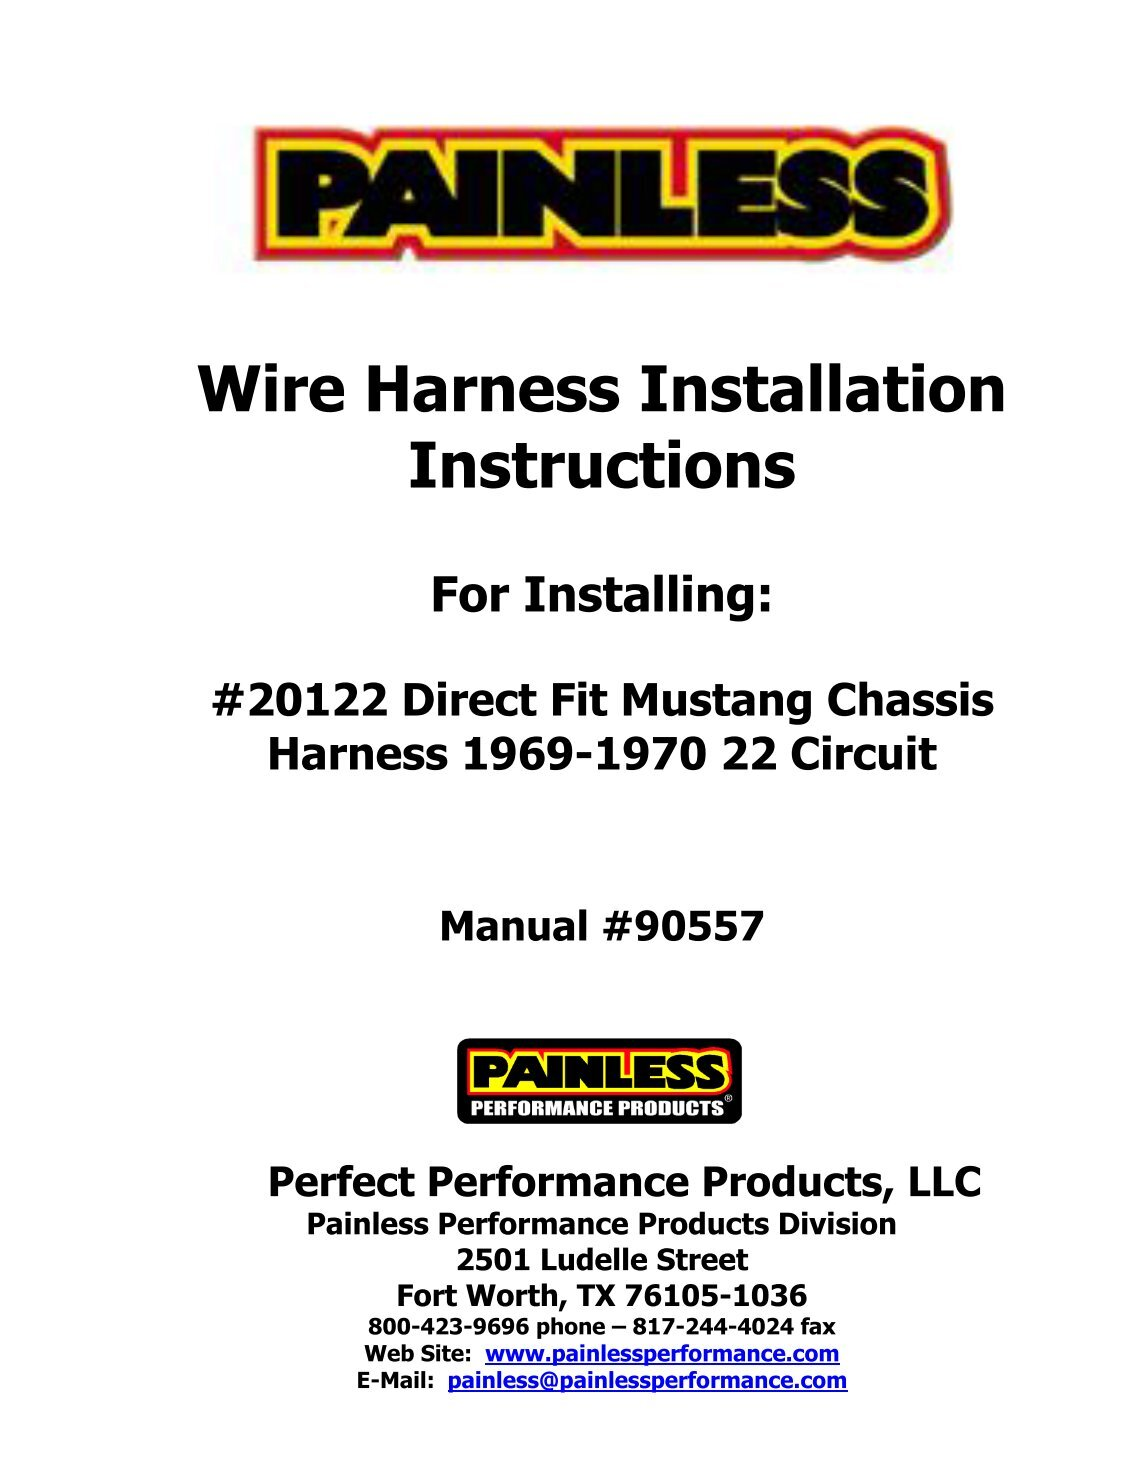 painless wiring phone number solidfonts wiring harnesses